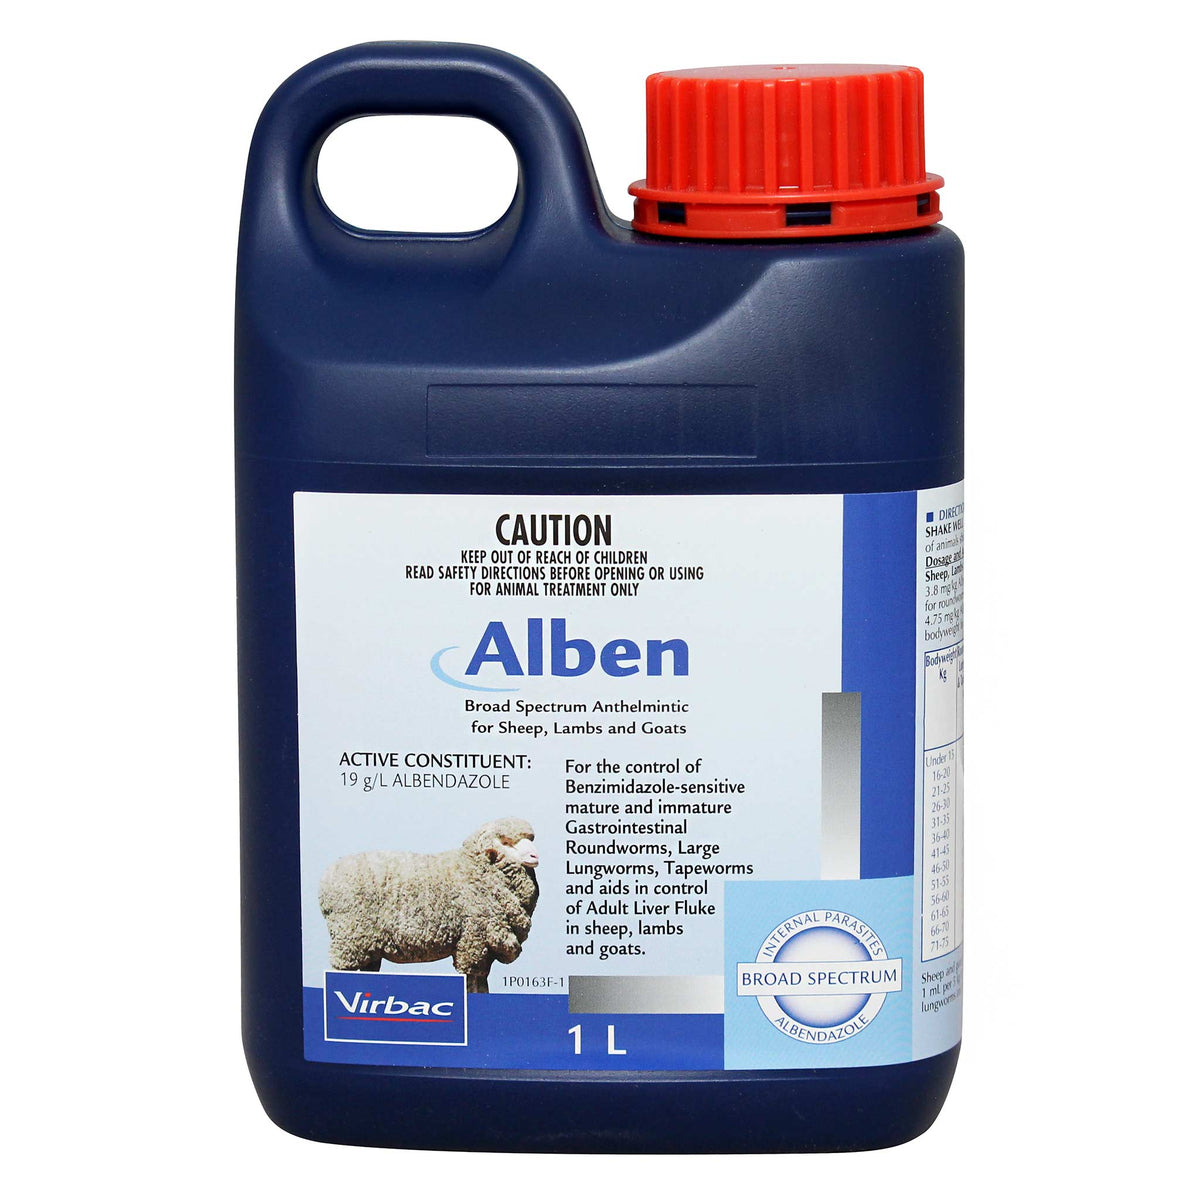 Virbac Alben Drench for Sheep, Lambs & Goats 1L